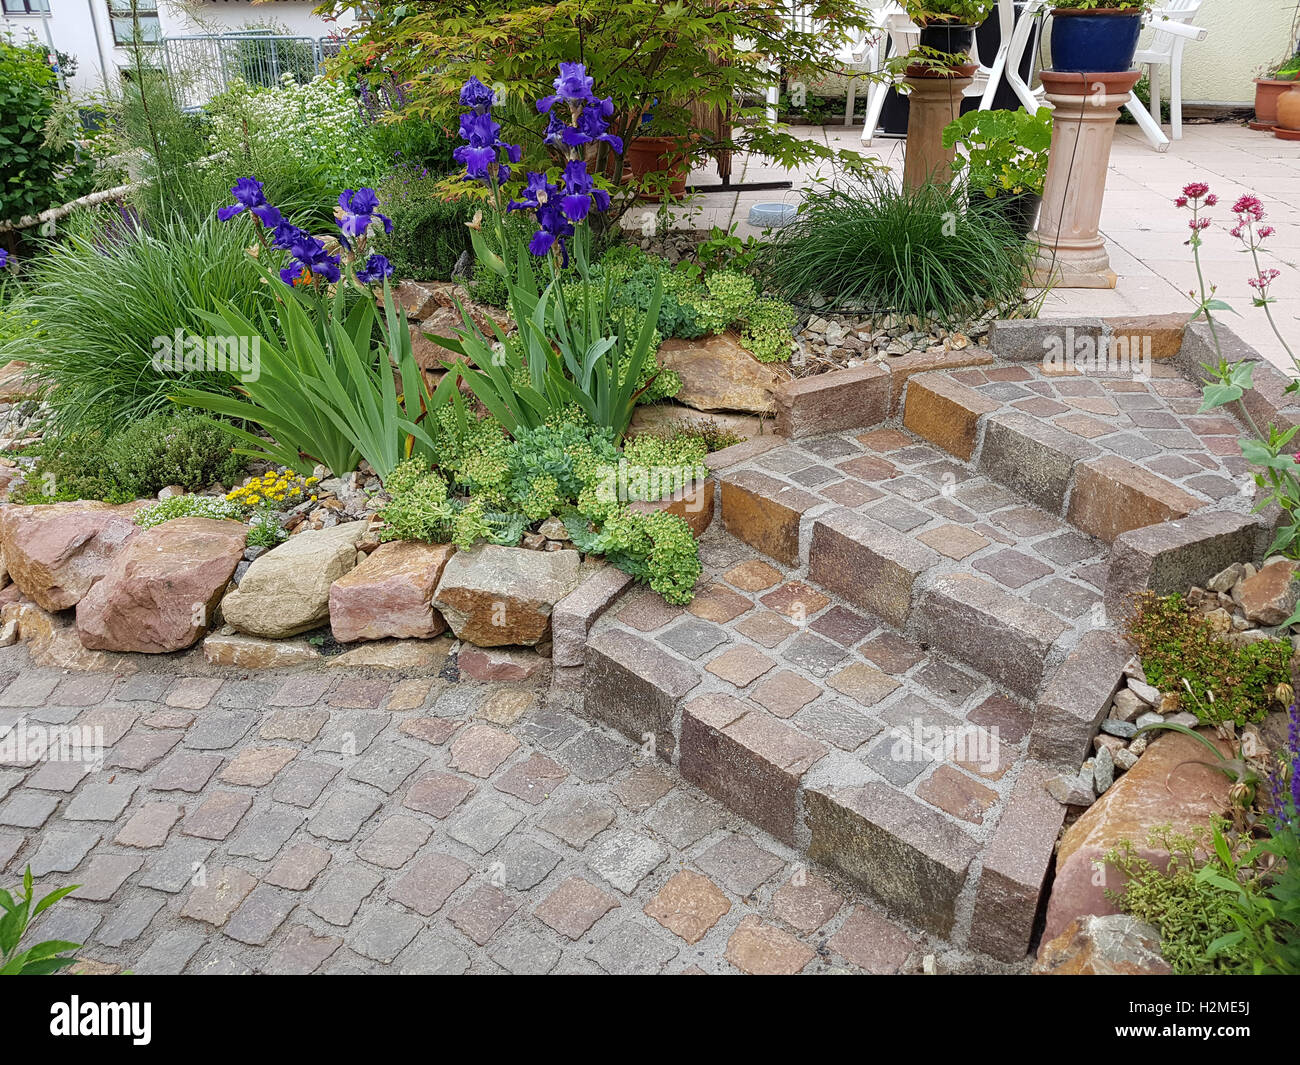 gartentreppe treppe garten pflaster naturpflaster stockfoto bild 122152062 alamy. Black Bedroom Furniture Sets. Home Design Ideas